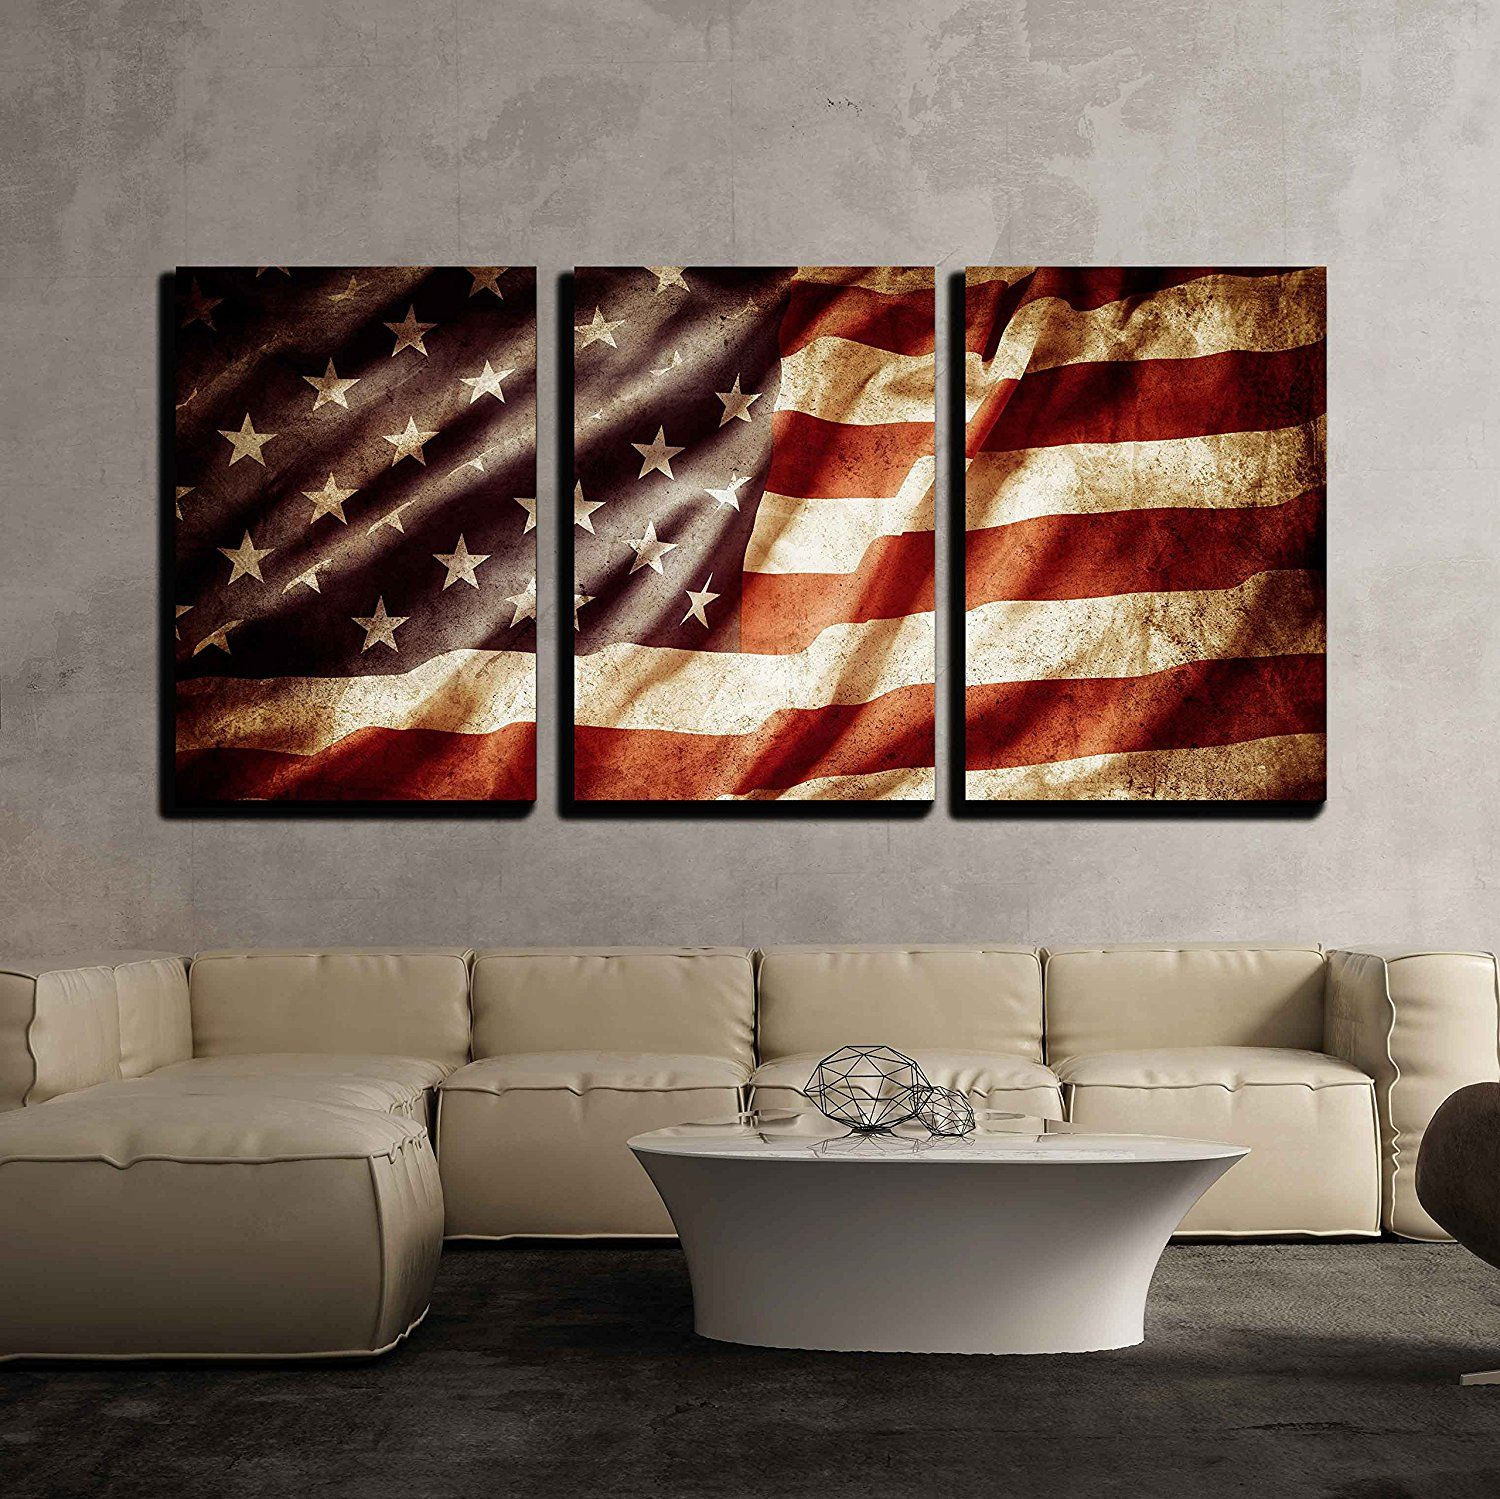 Wall26 3 Piece Canvas Wall Art Closeup Of Grunge American Flag Modern Home Decor Stretc With Images American Flag Wall Decor Flag Wall Decor Canvas Art Wall Decor